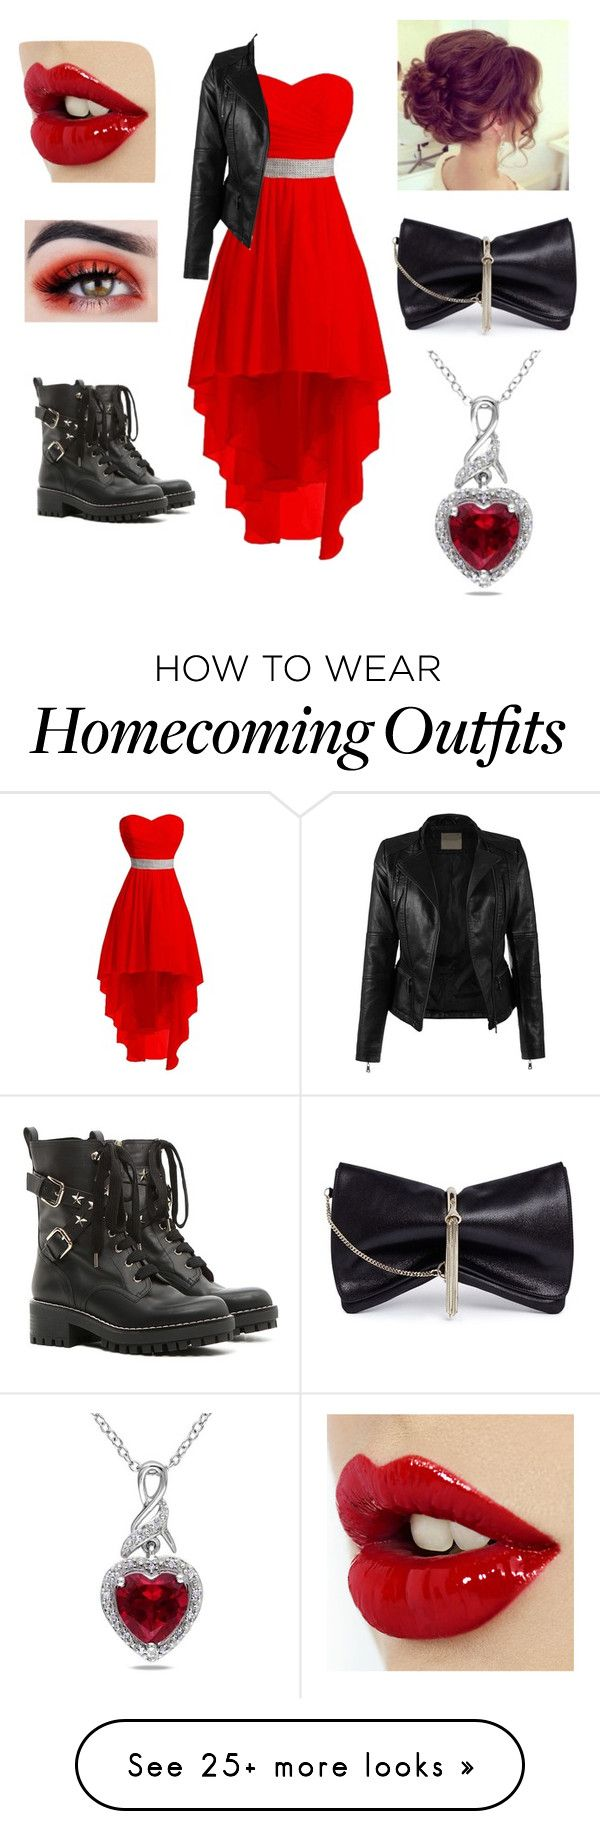 """Queen of Hearts"" by lovelyworlditis on Polyvore featuring RED Valentino, Jimmy Choo and Miadora"